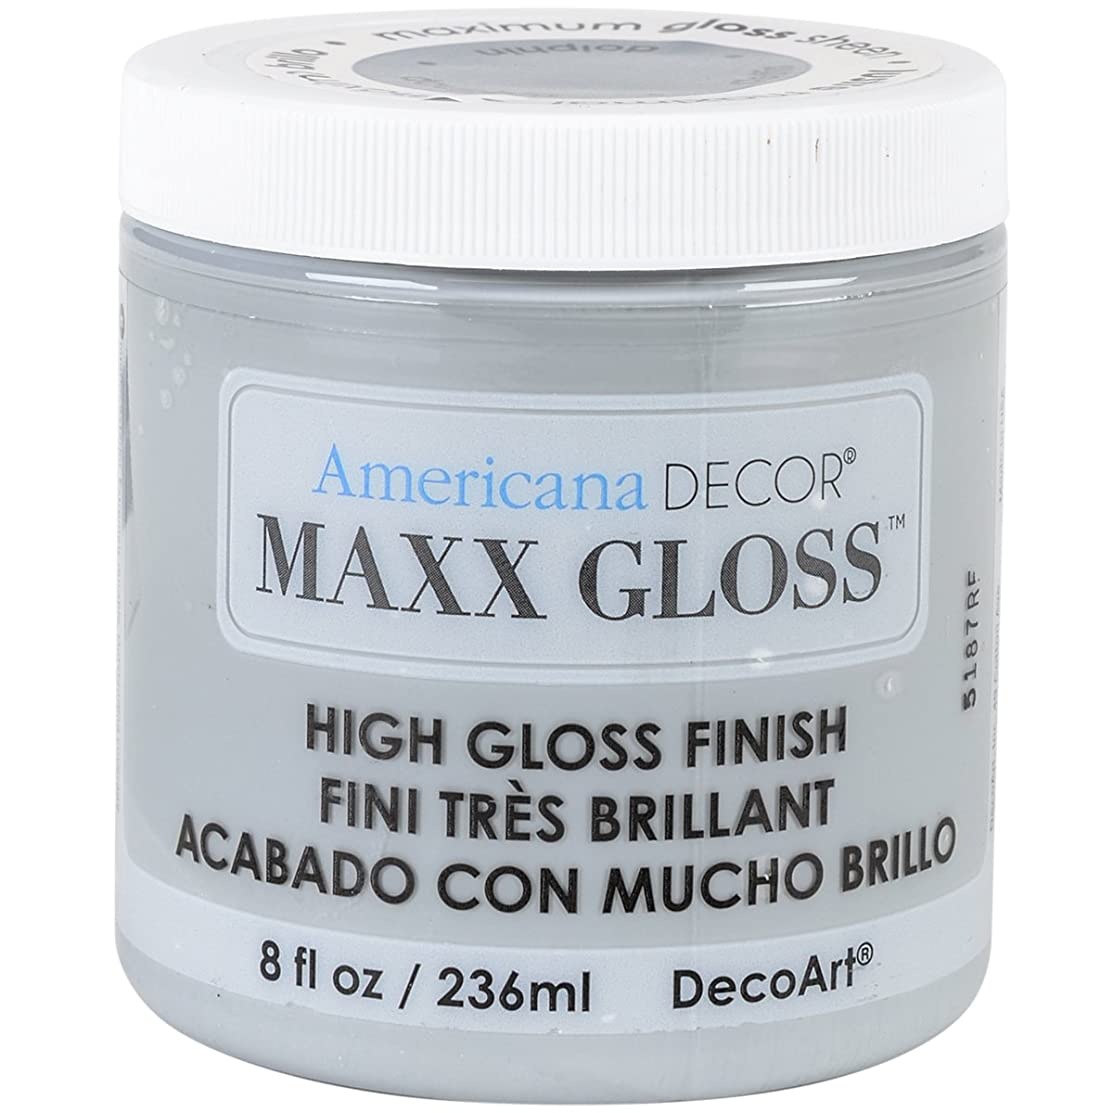 DecoArt Maxx Gloss Acrylic Paint, 8 oz, Dolphin